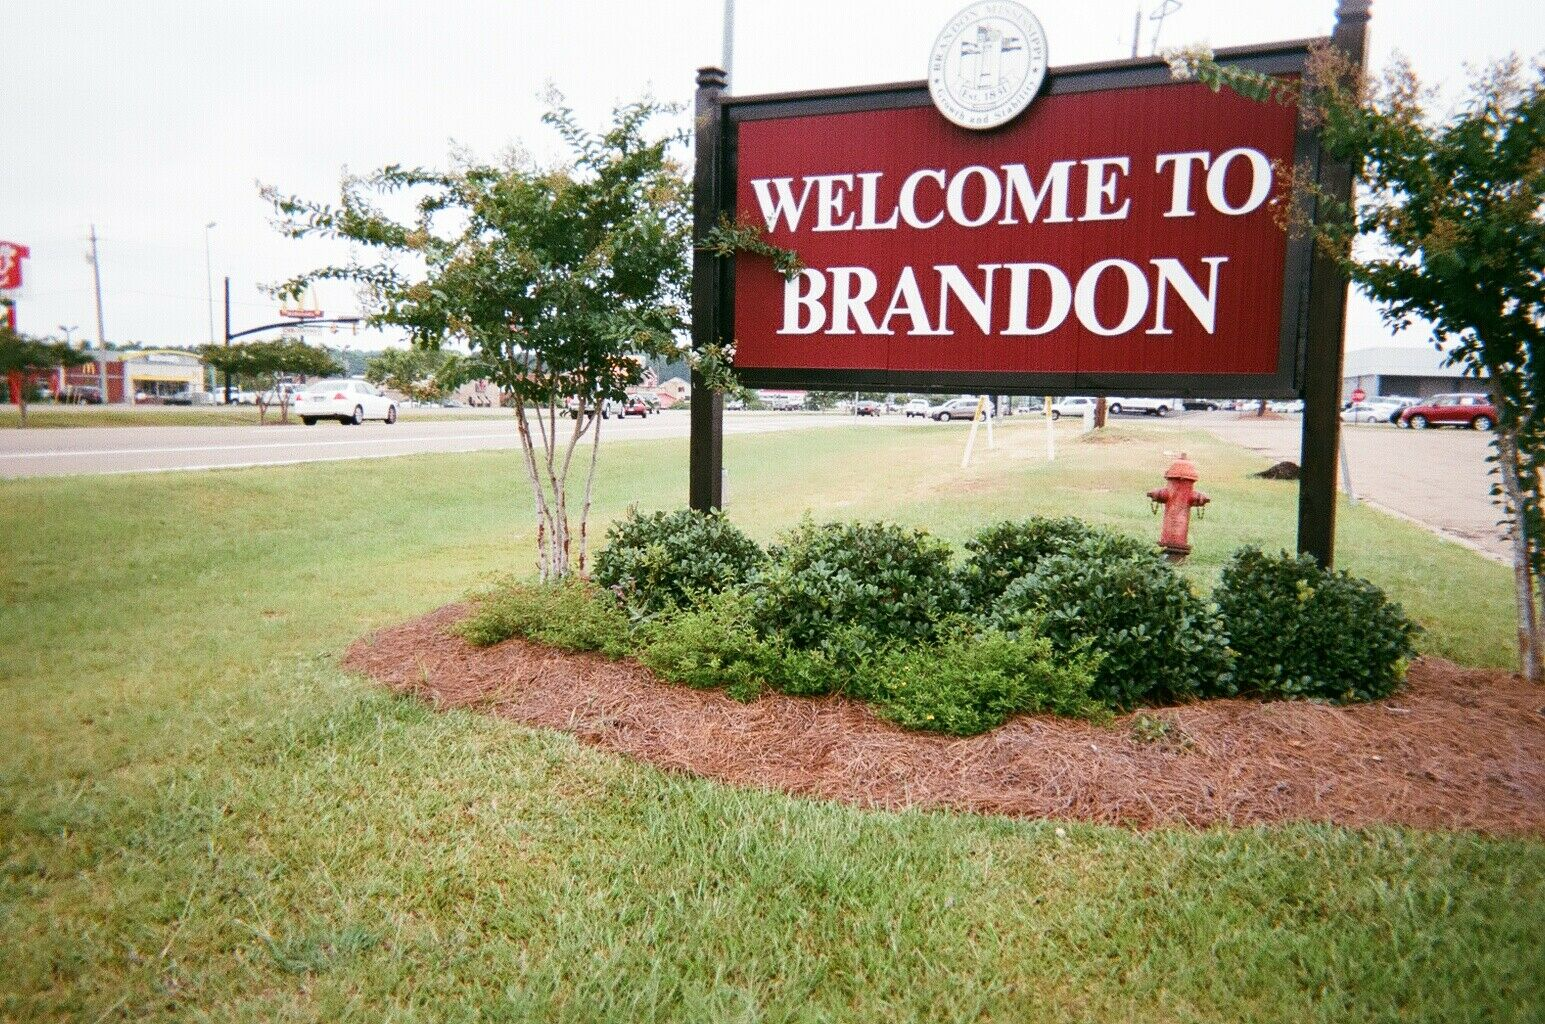 BRANDON LOT - LOW LOW PRICE - LOW PAYMENTS - $1.25